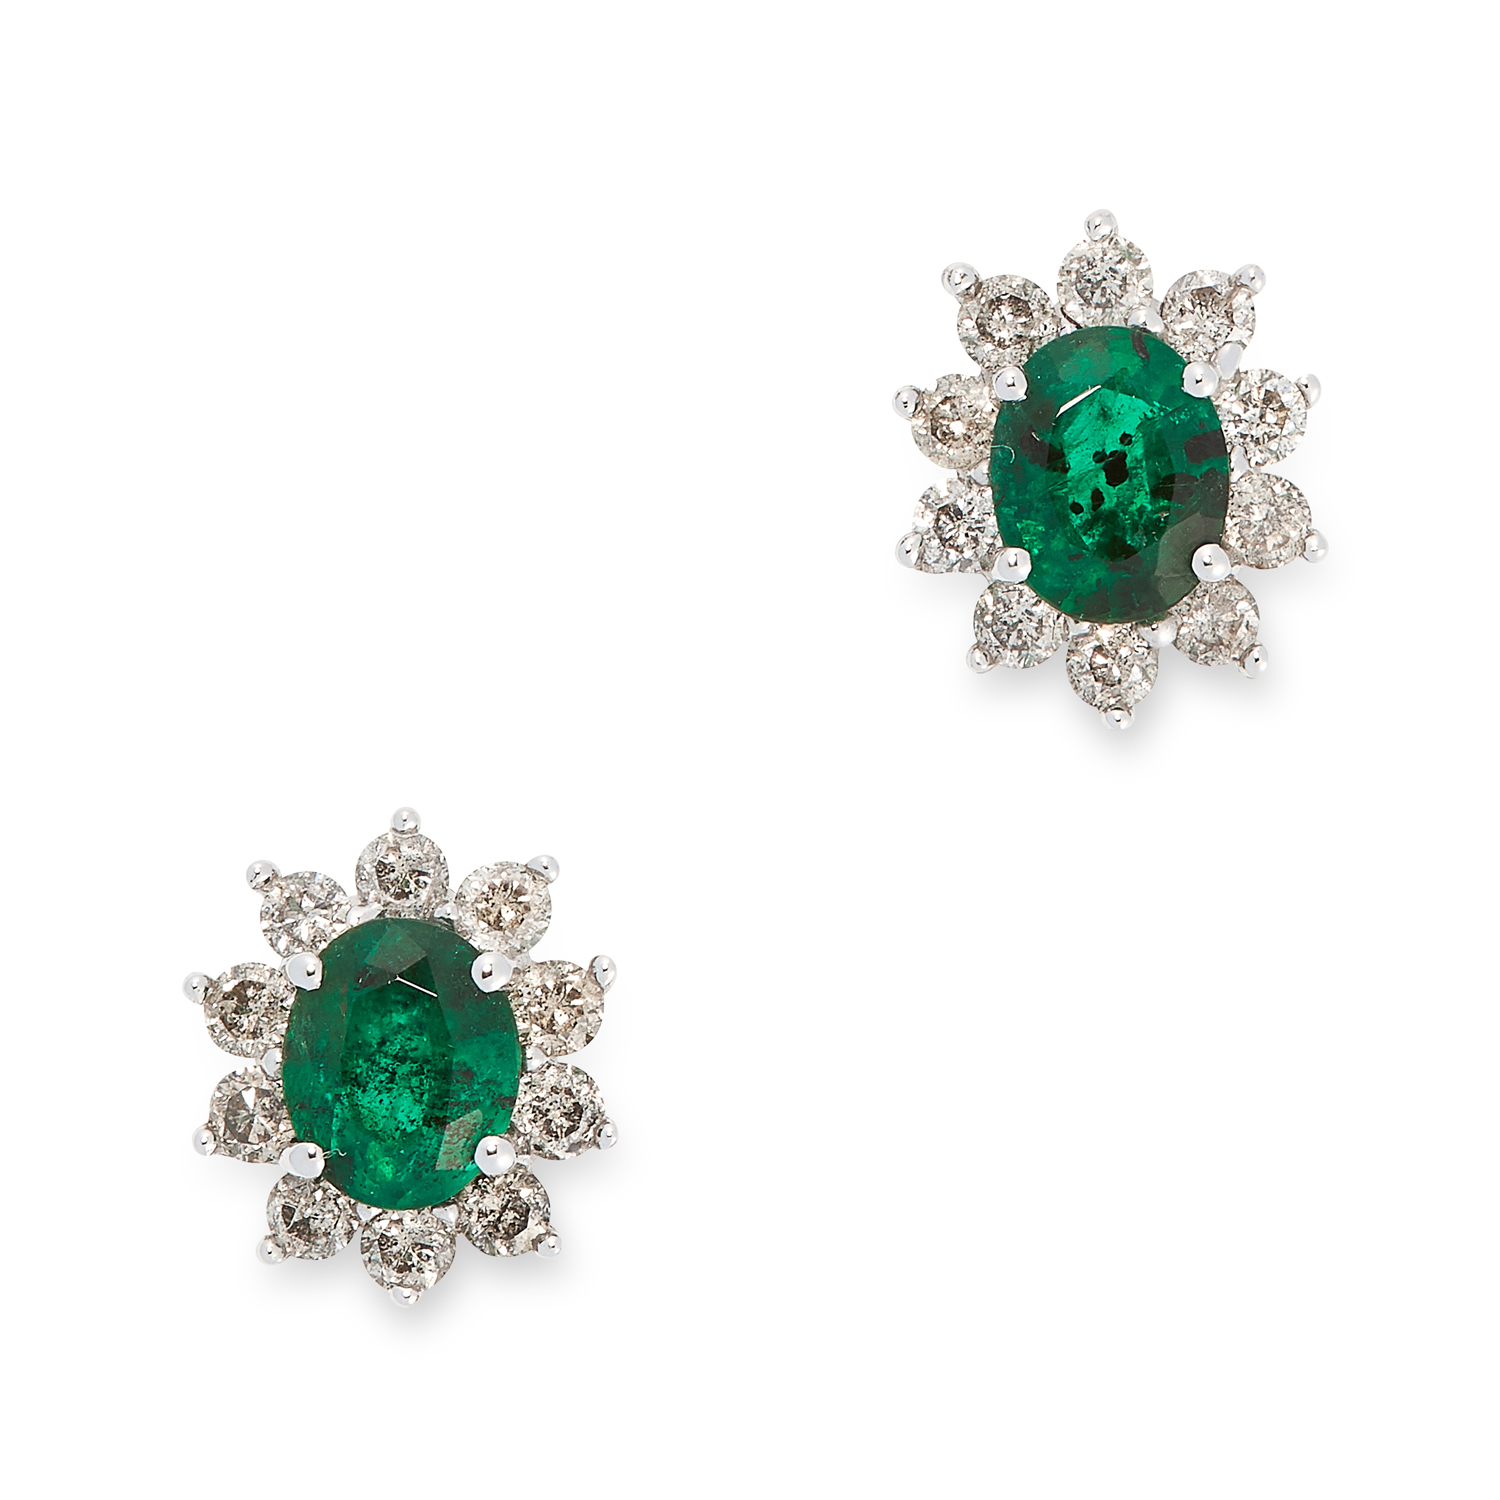 A PAIR OF EMERALD AND DIAMOND CLUSTER EARRINGS set with an oval cut emerald in a cluster of round